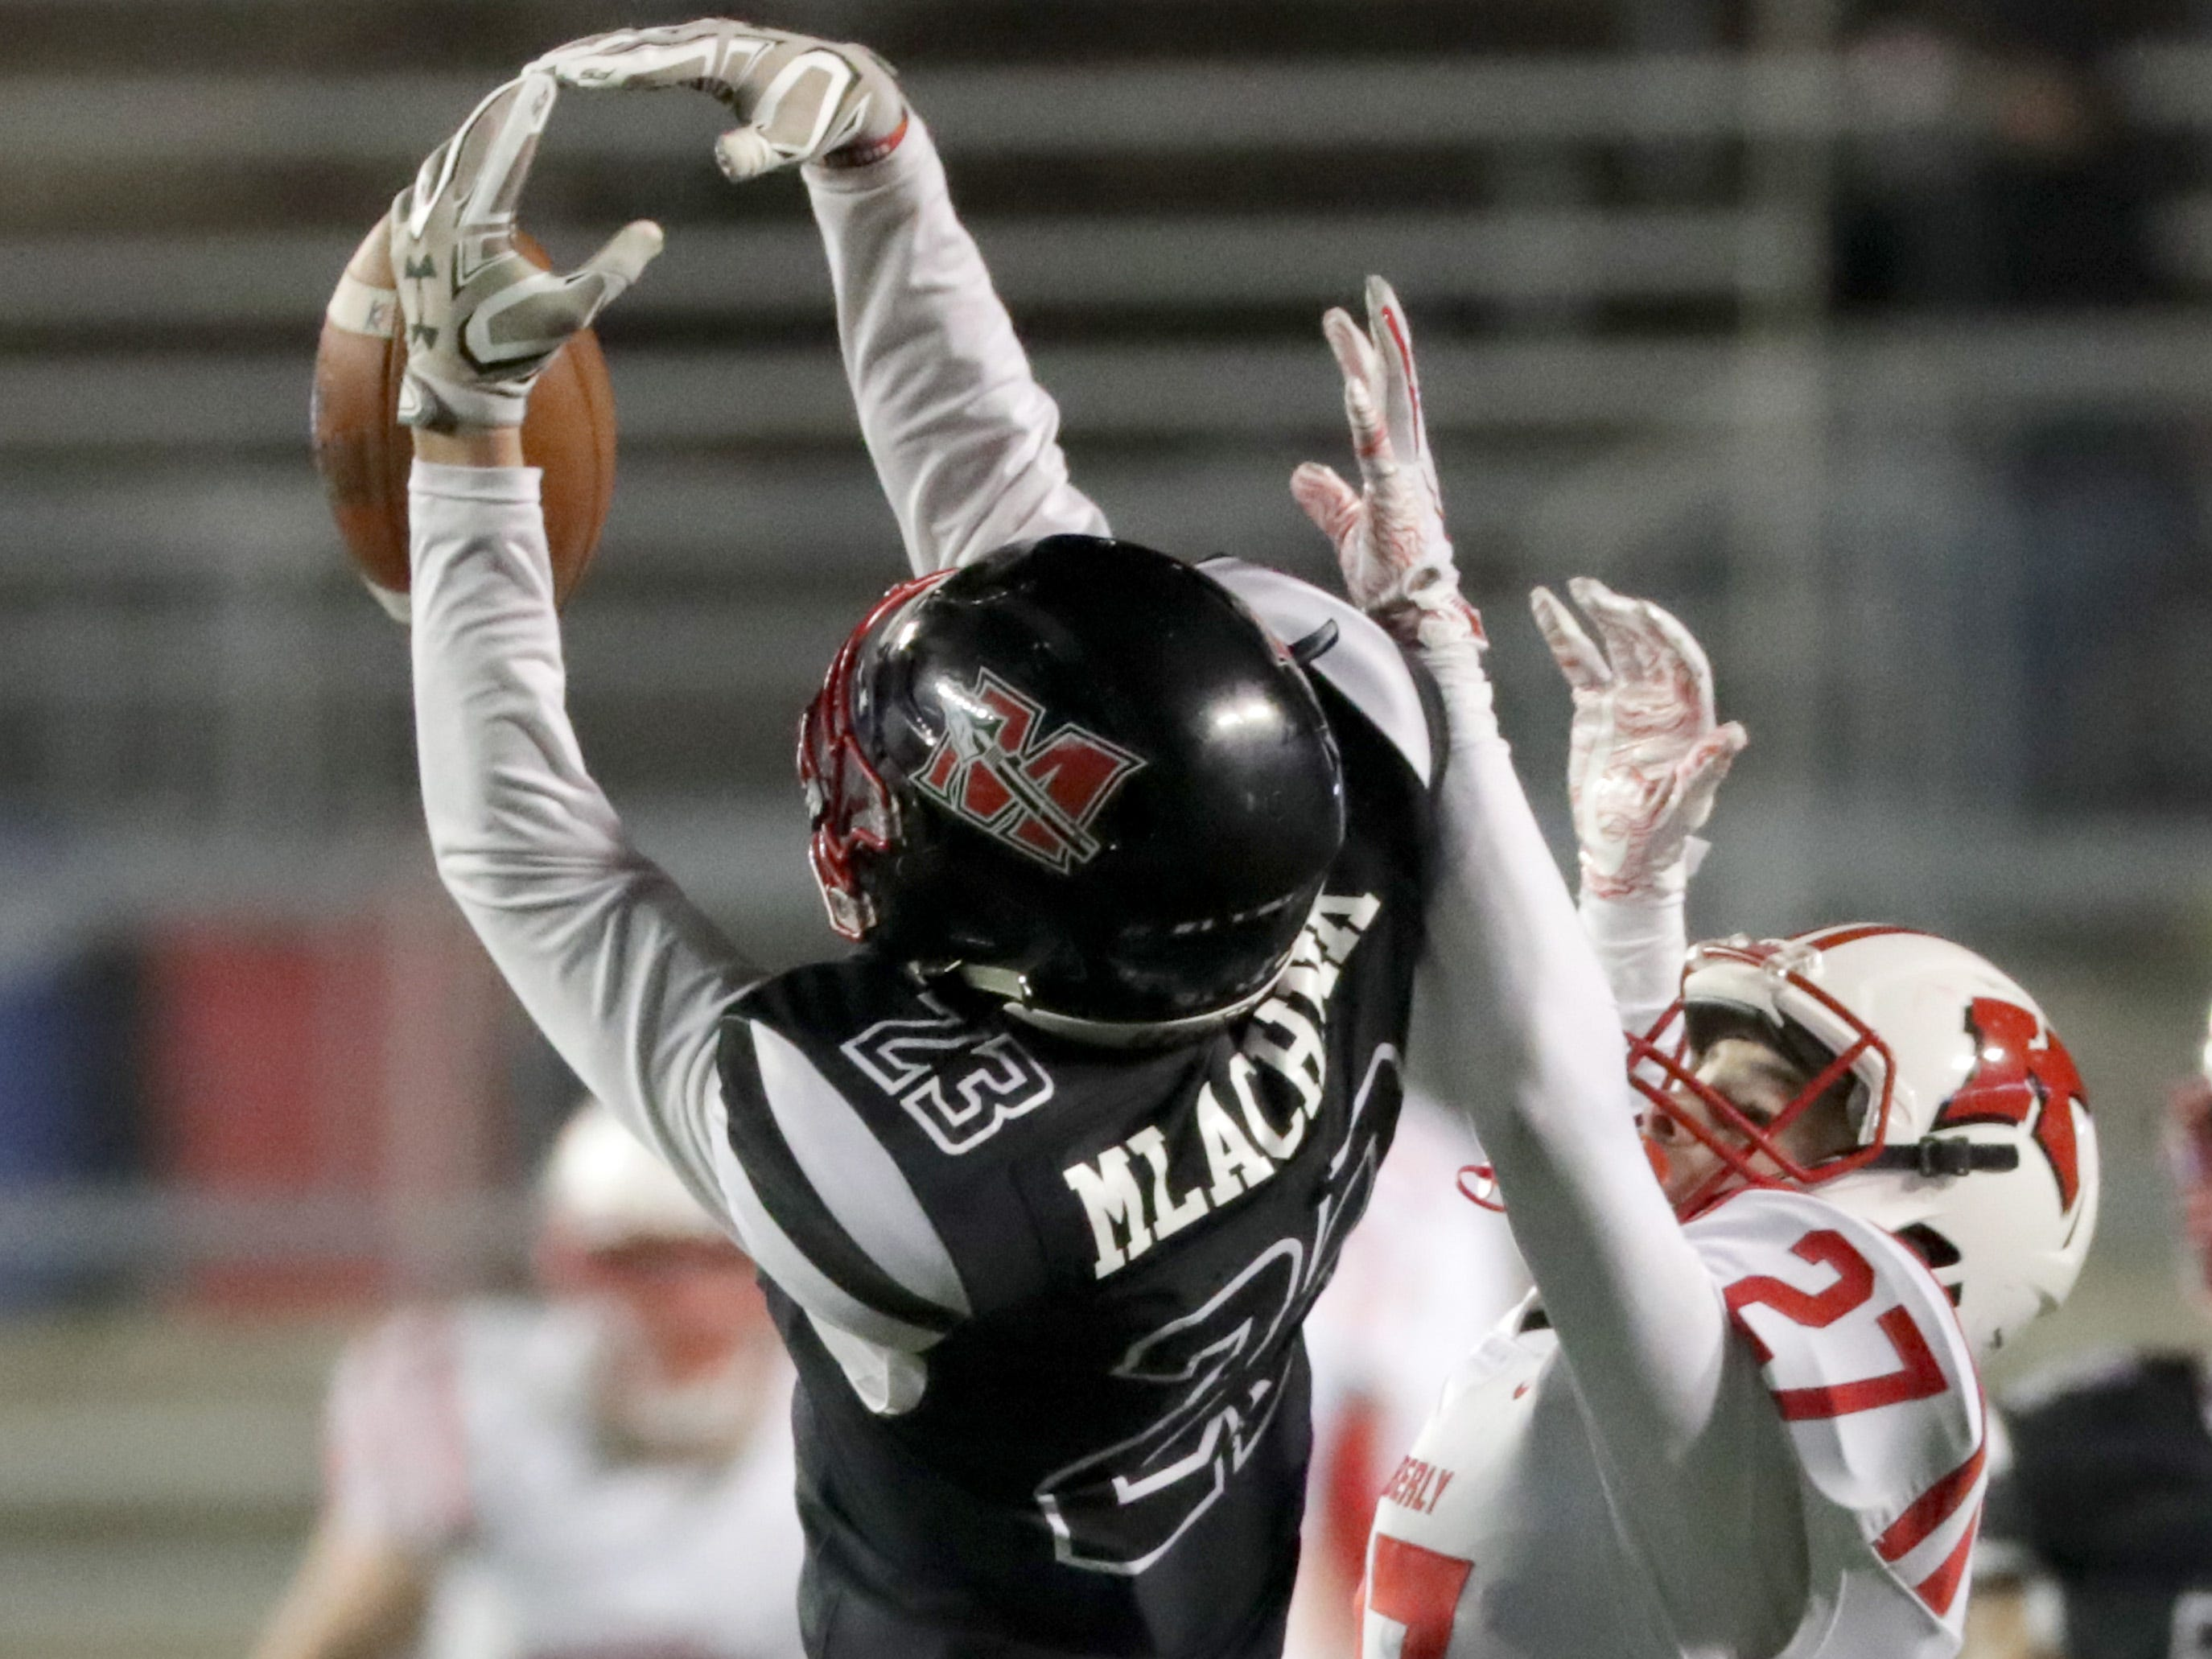 Kimberly High School's #27 Trey Tennessen breaks up a pass intended for Muskego High School's #23 Joseph Mlachnik during the WIAA Division 1 state championship football game on Friday, November 16, 2018, at Camp Randall in Madison, Wis.